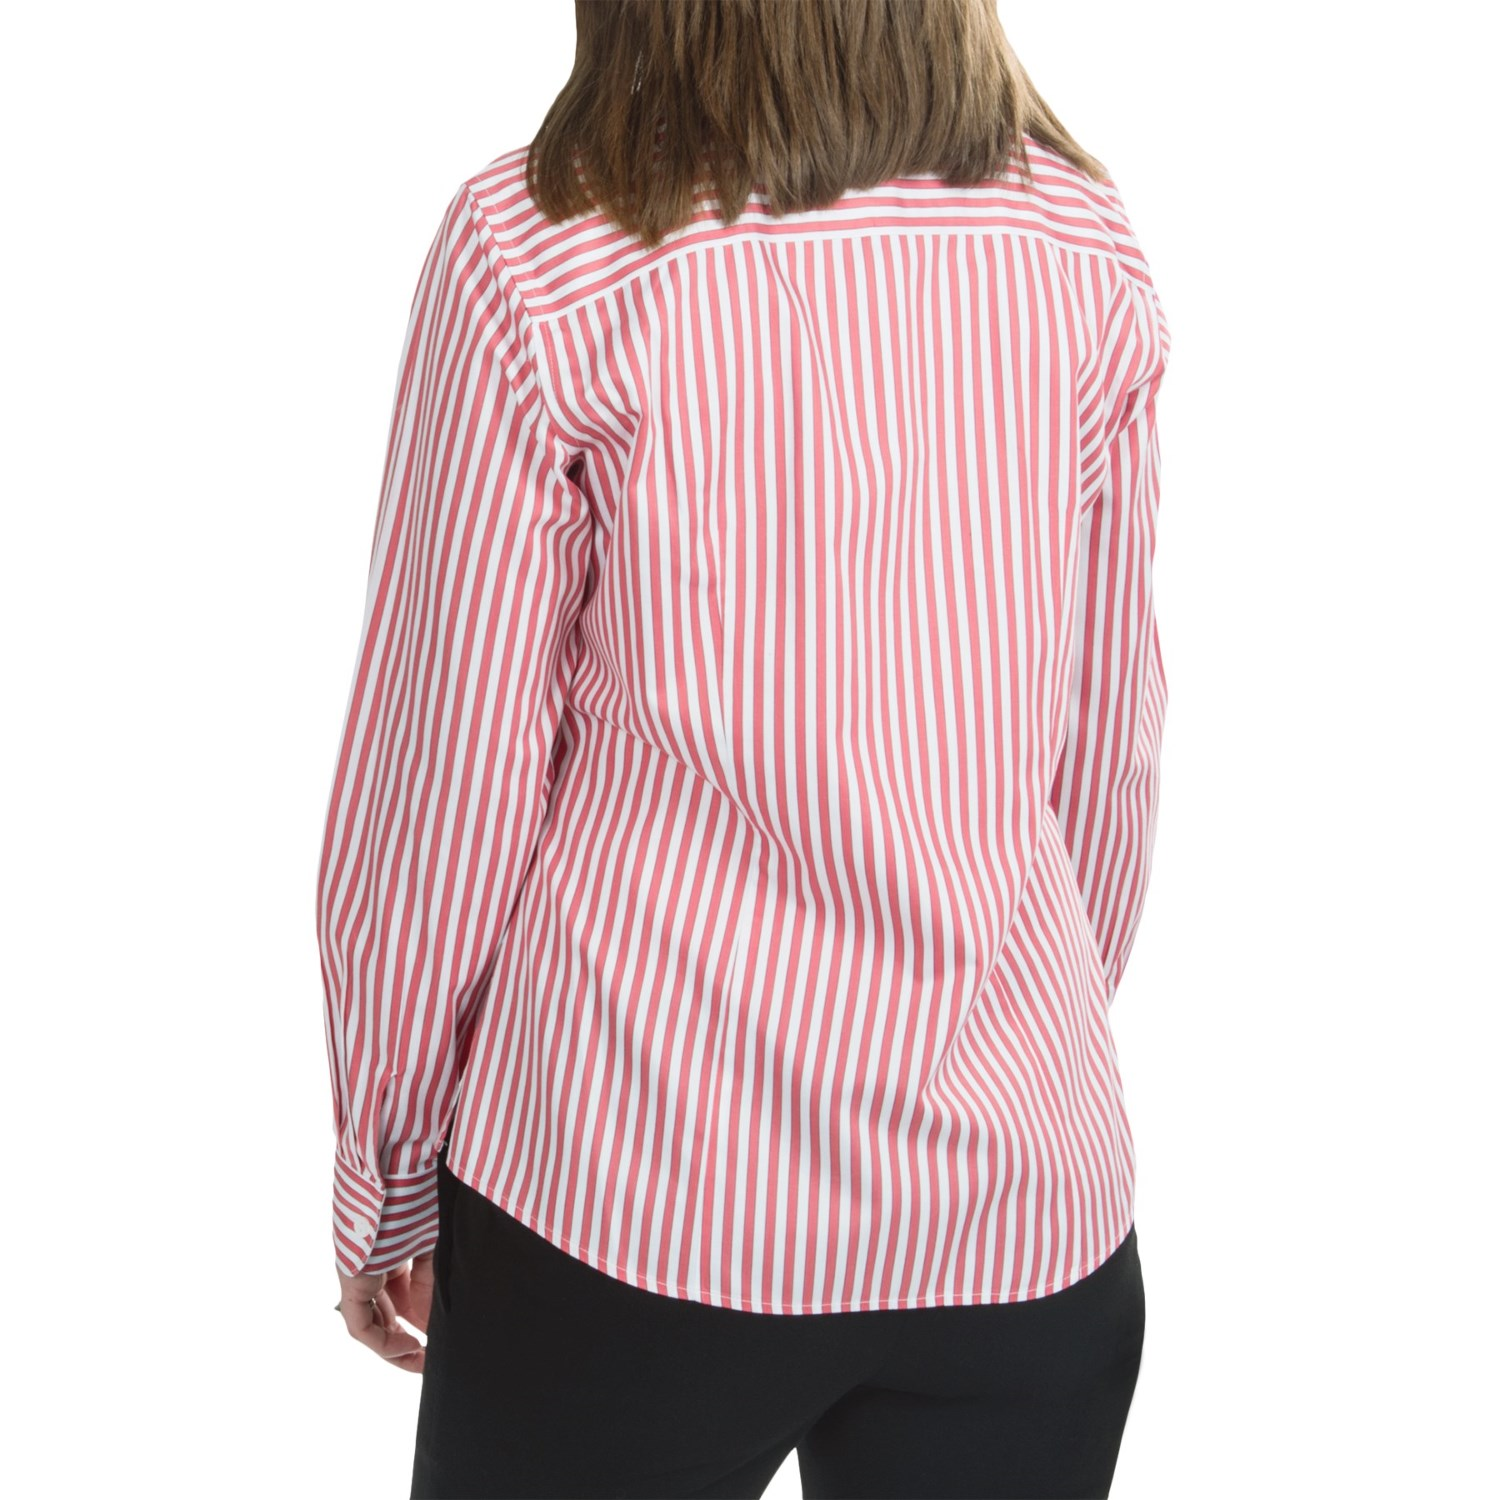 Foxcroft fitted cotton stripe shirt for women 6630p Wrinkle free shirts for women